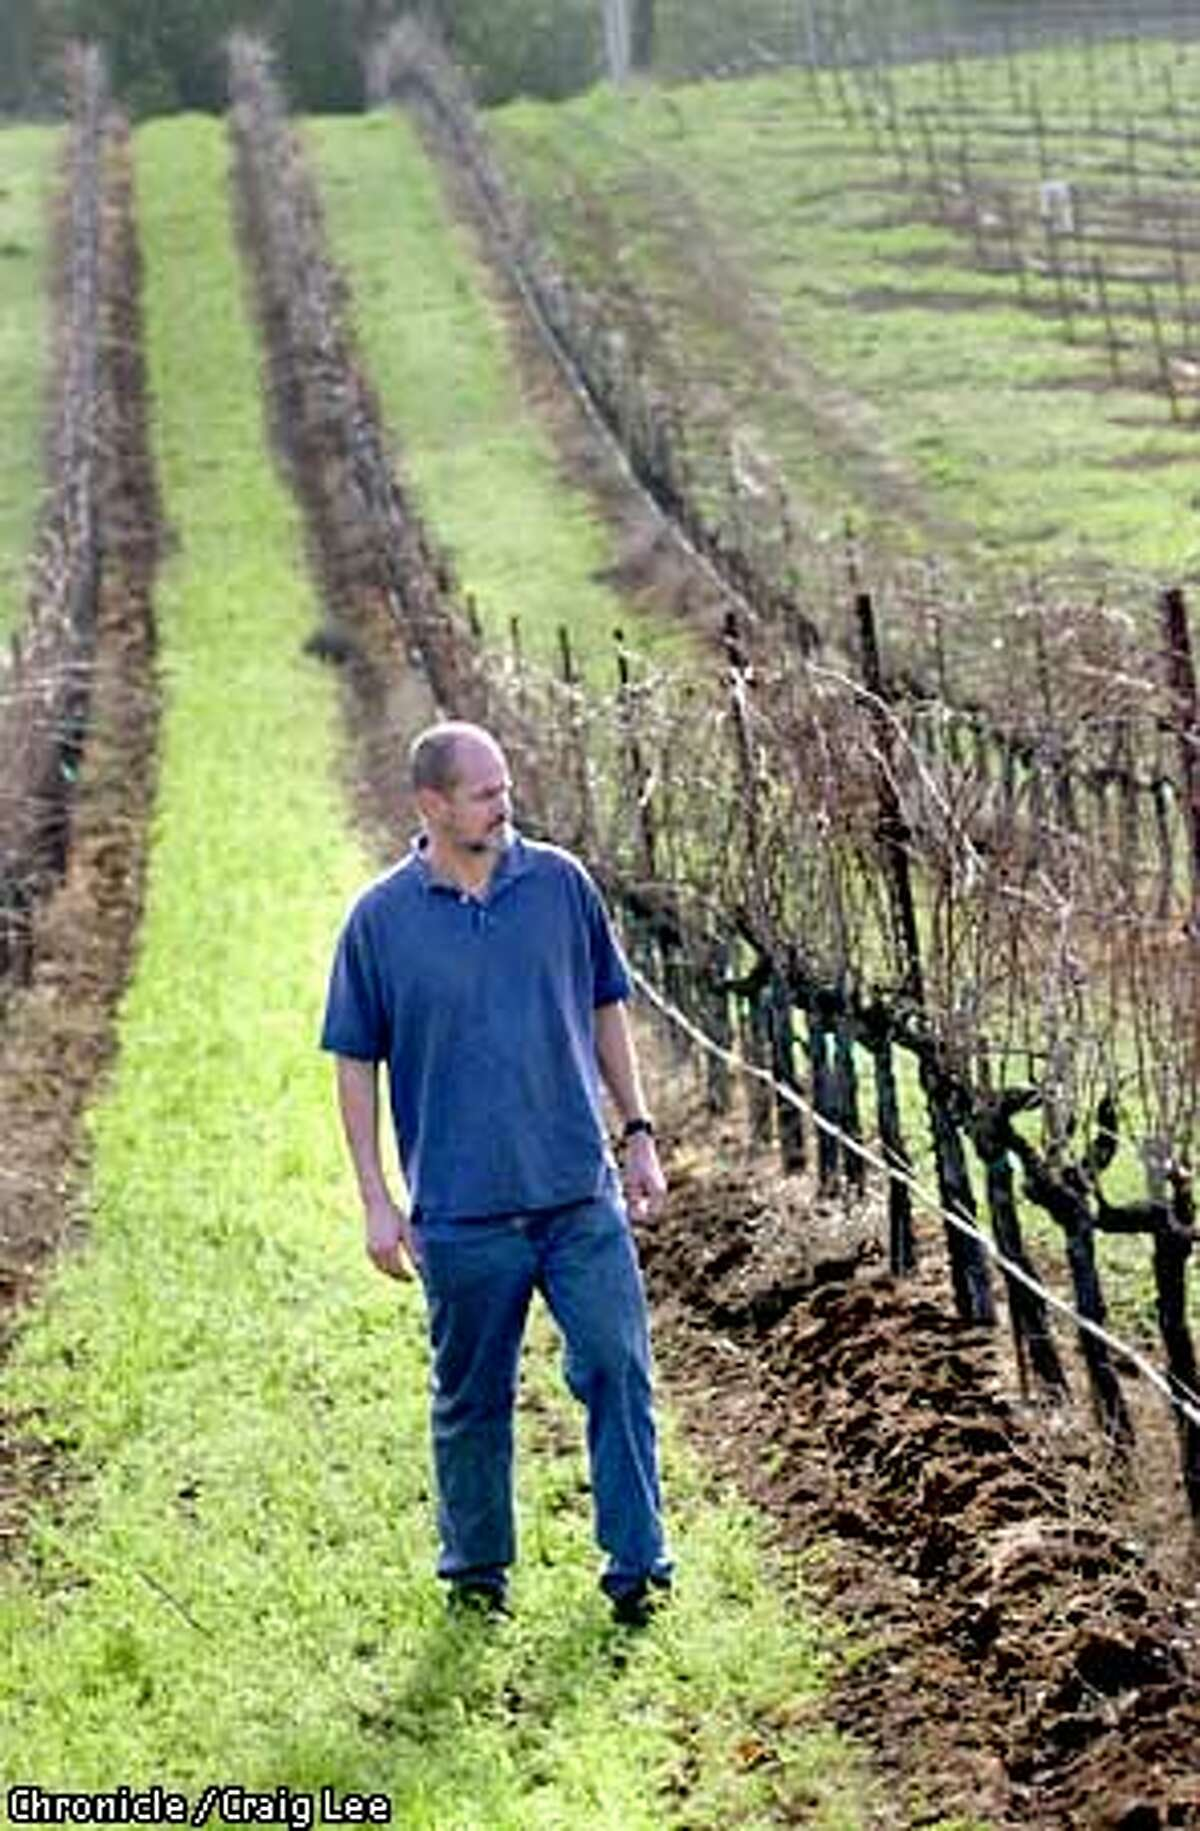 FRANC2-C-24JAN03-FD-CL Jon-Mark Chappellet, at his family vienyard by the vines that produce their Cabernet Franc wines. This is at Chappellet Vineyard in the Napa Valley. Photo by Craig Lee/San Francisco Chronicle